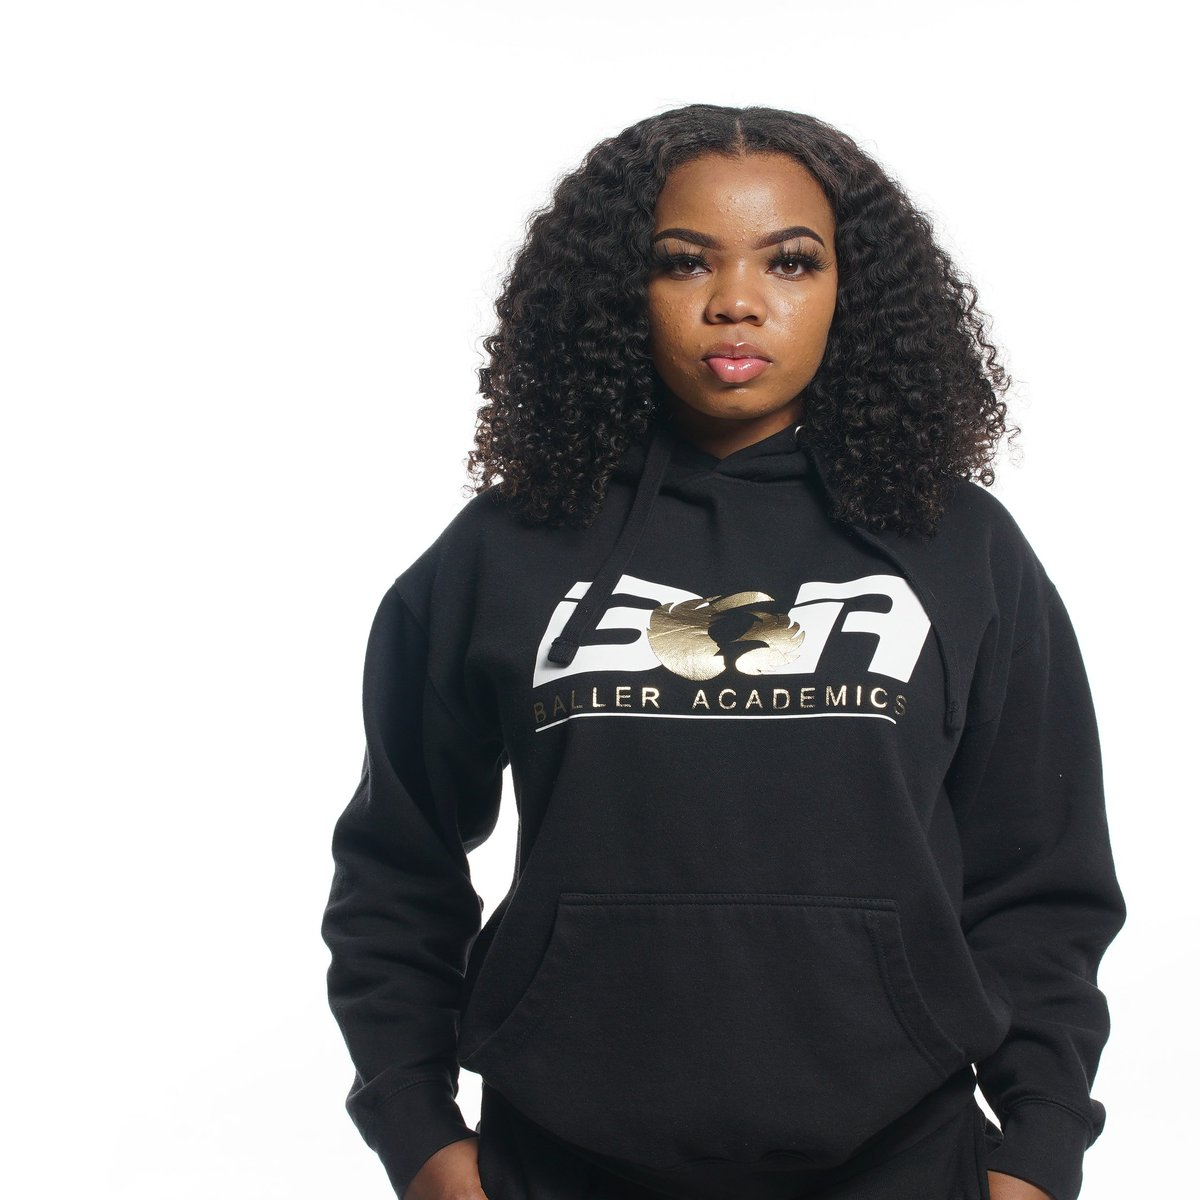 That online cart isn't going to fill itself. What are you waiting for?   👇🏻👇🏽  Get to shopping 👇🏾👇🏿  ⏩ https://t.co/a5wB5gvkNN ⏪  #balleracademics #howweball #wegetitdone #athleisure #athleticapparel #athleticwear #sportswear #onlineshopping #ootd #hoodie #blackownedbusiness https://t.co/vY5xU3VxQP